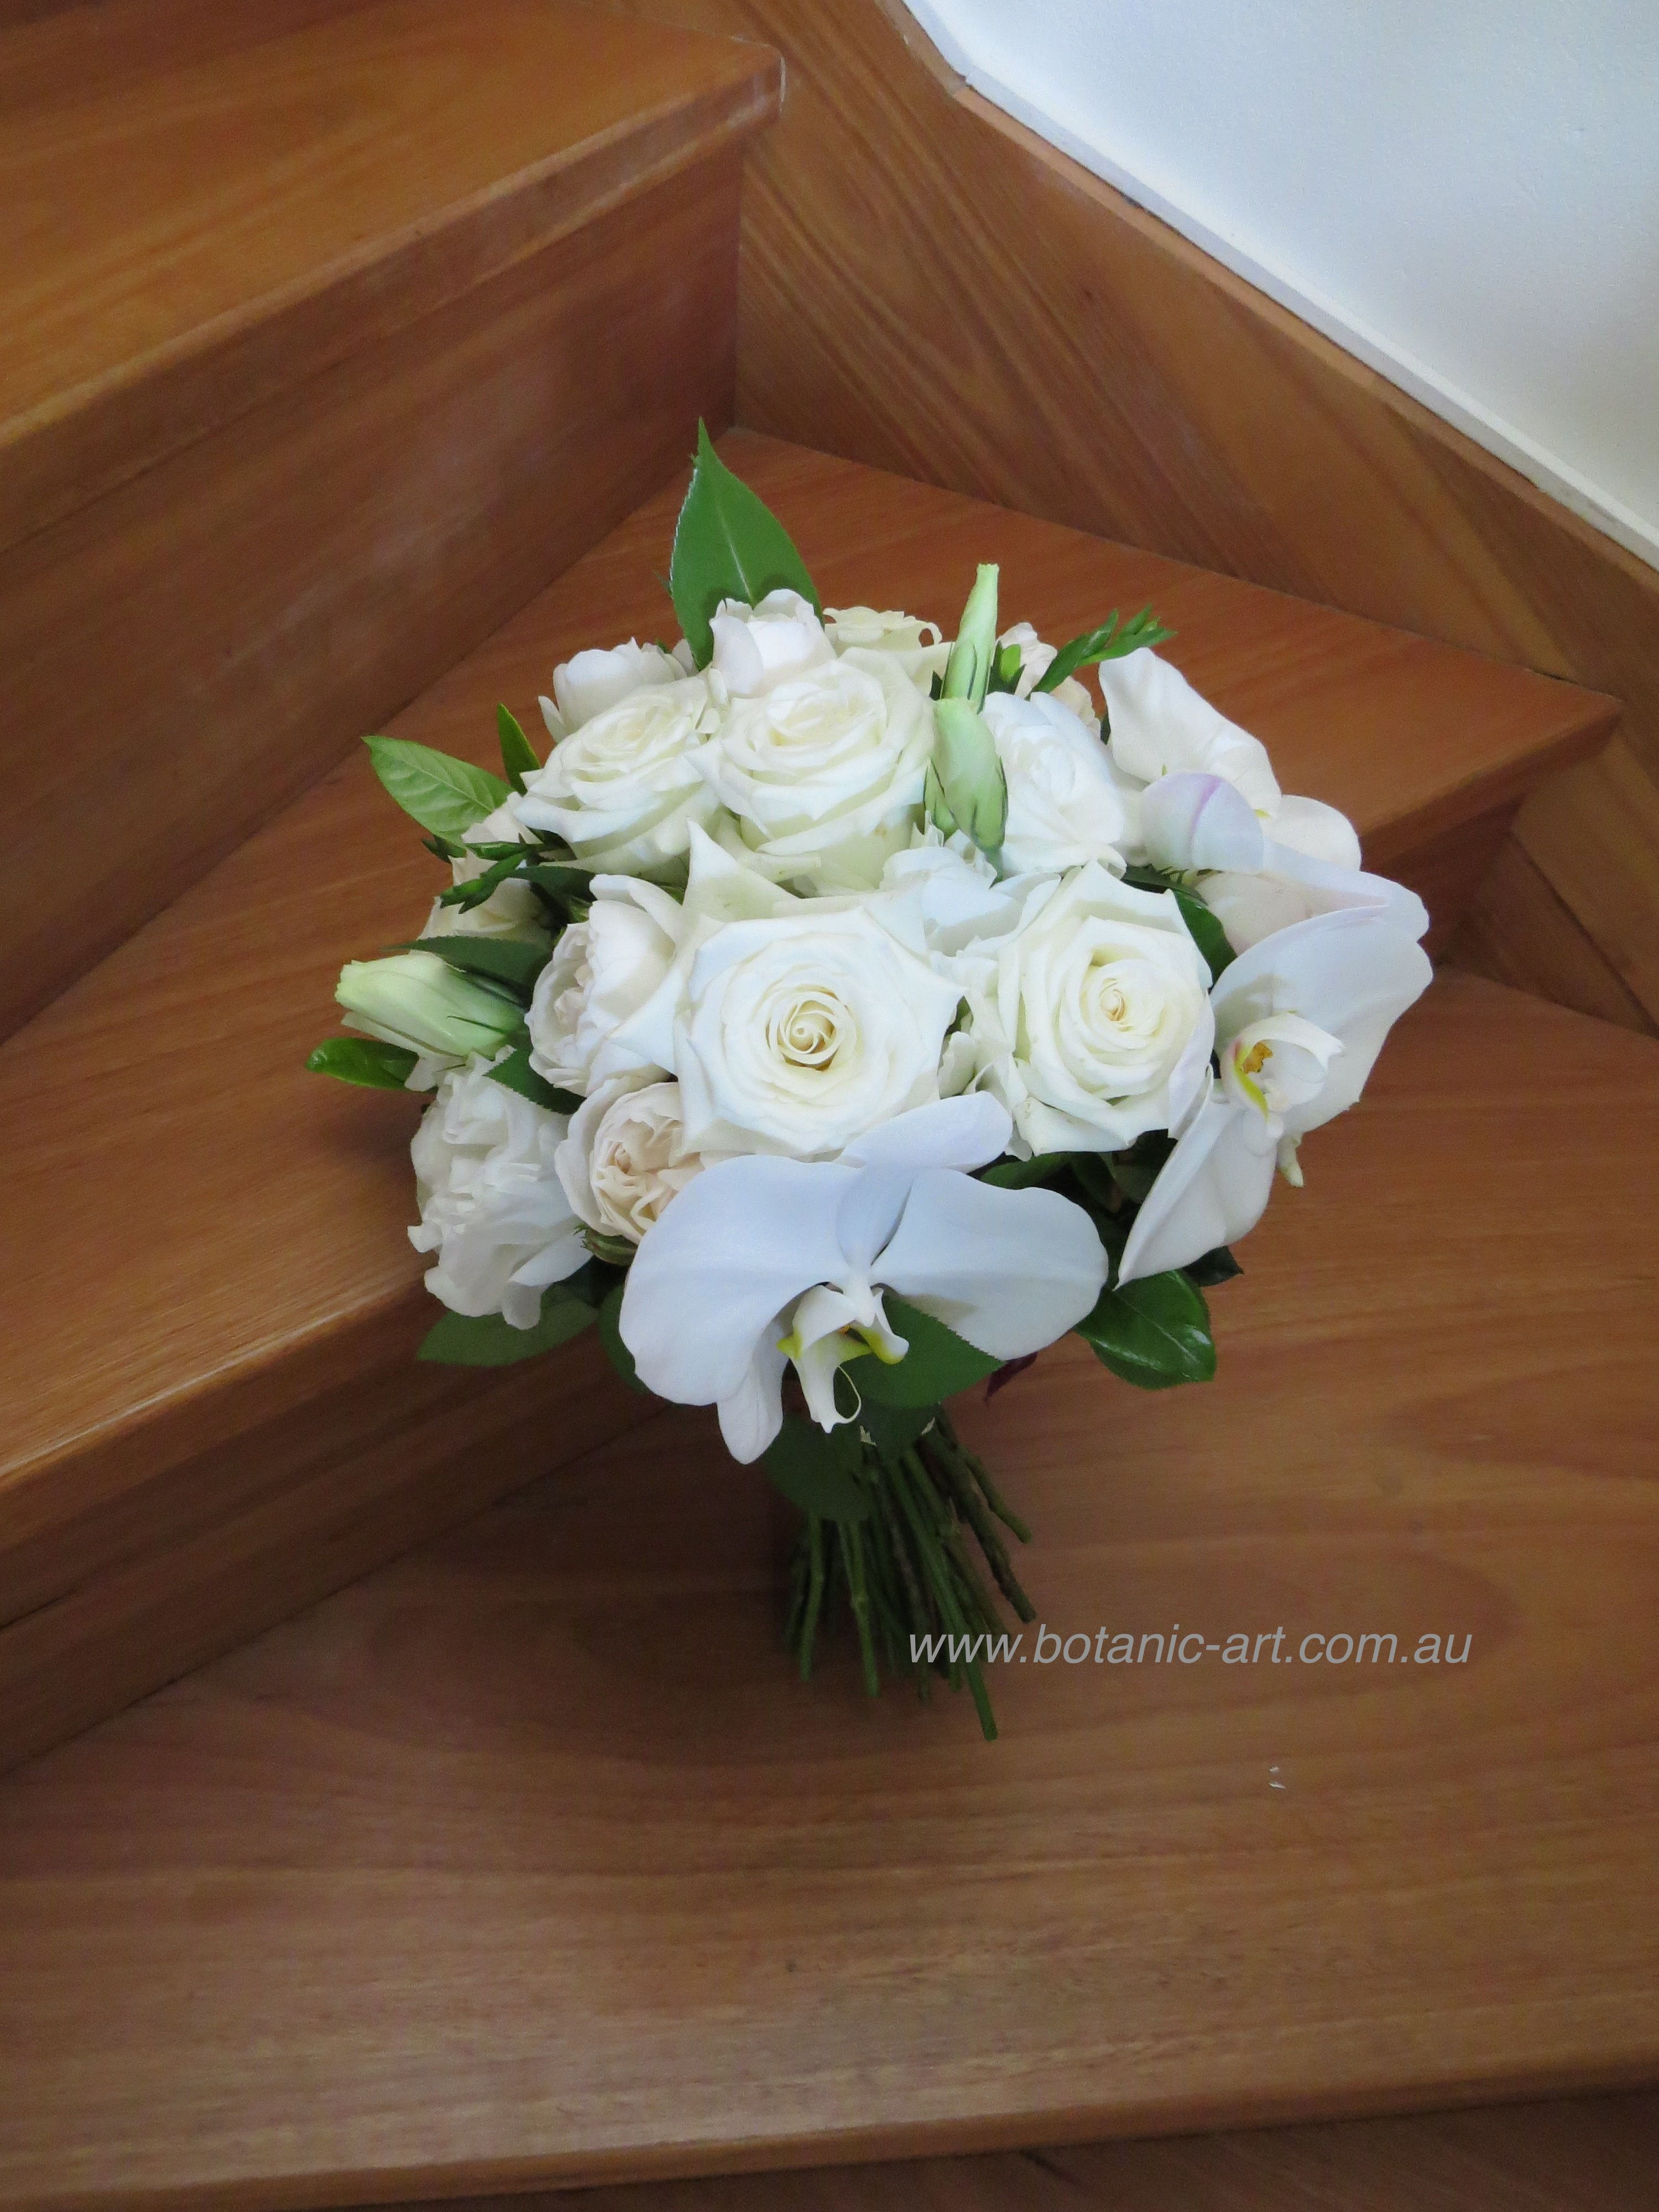 roses and phalanophsis orchids with a touch of green is